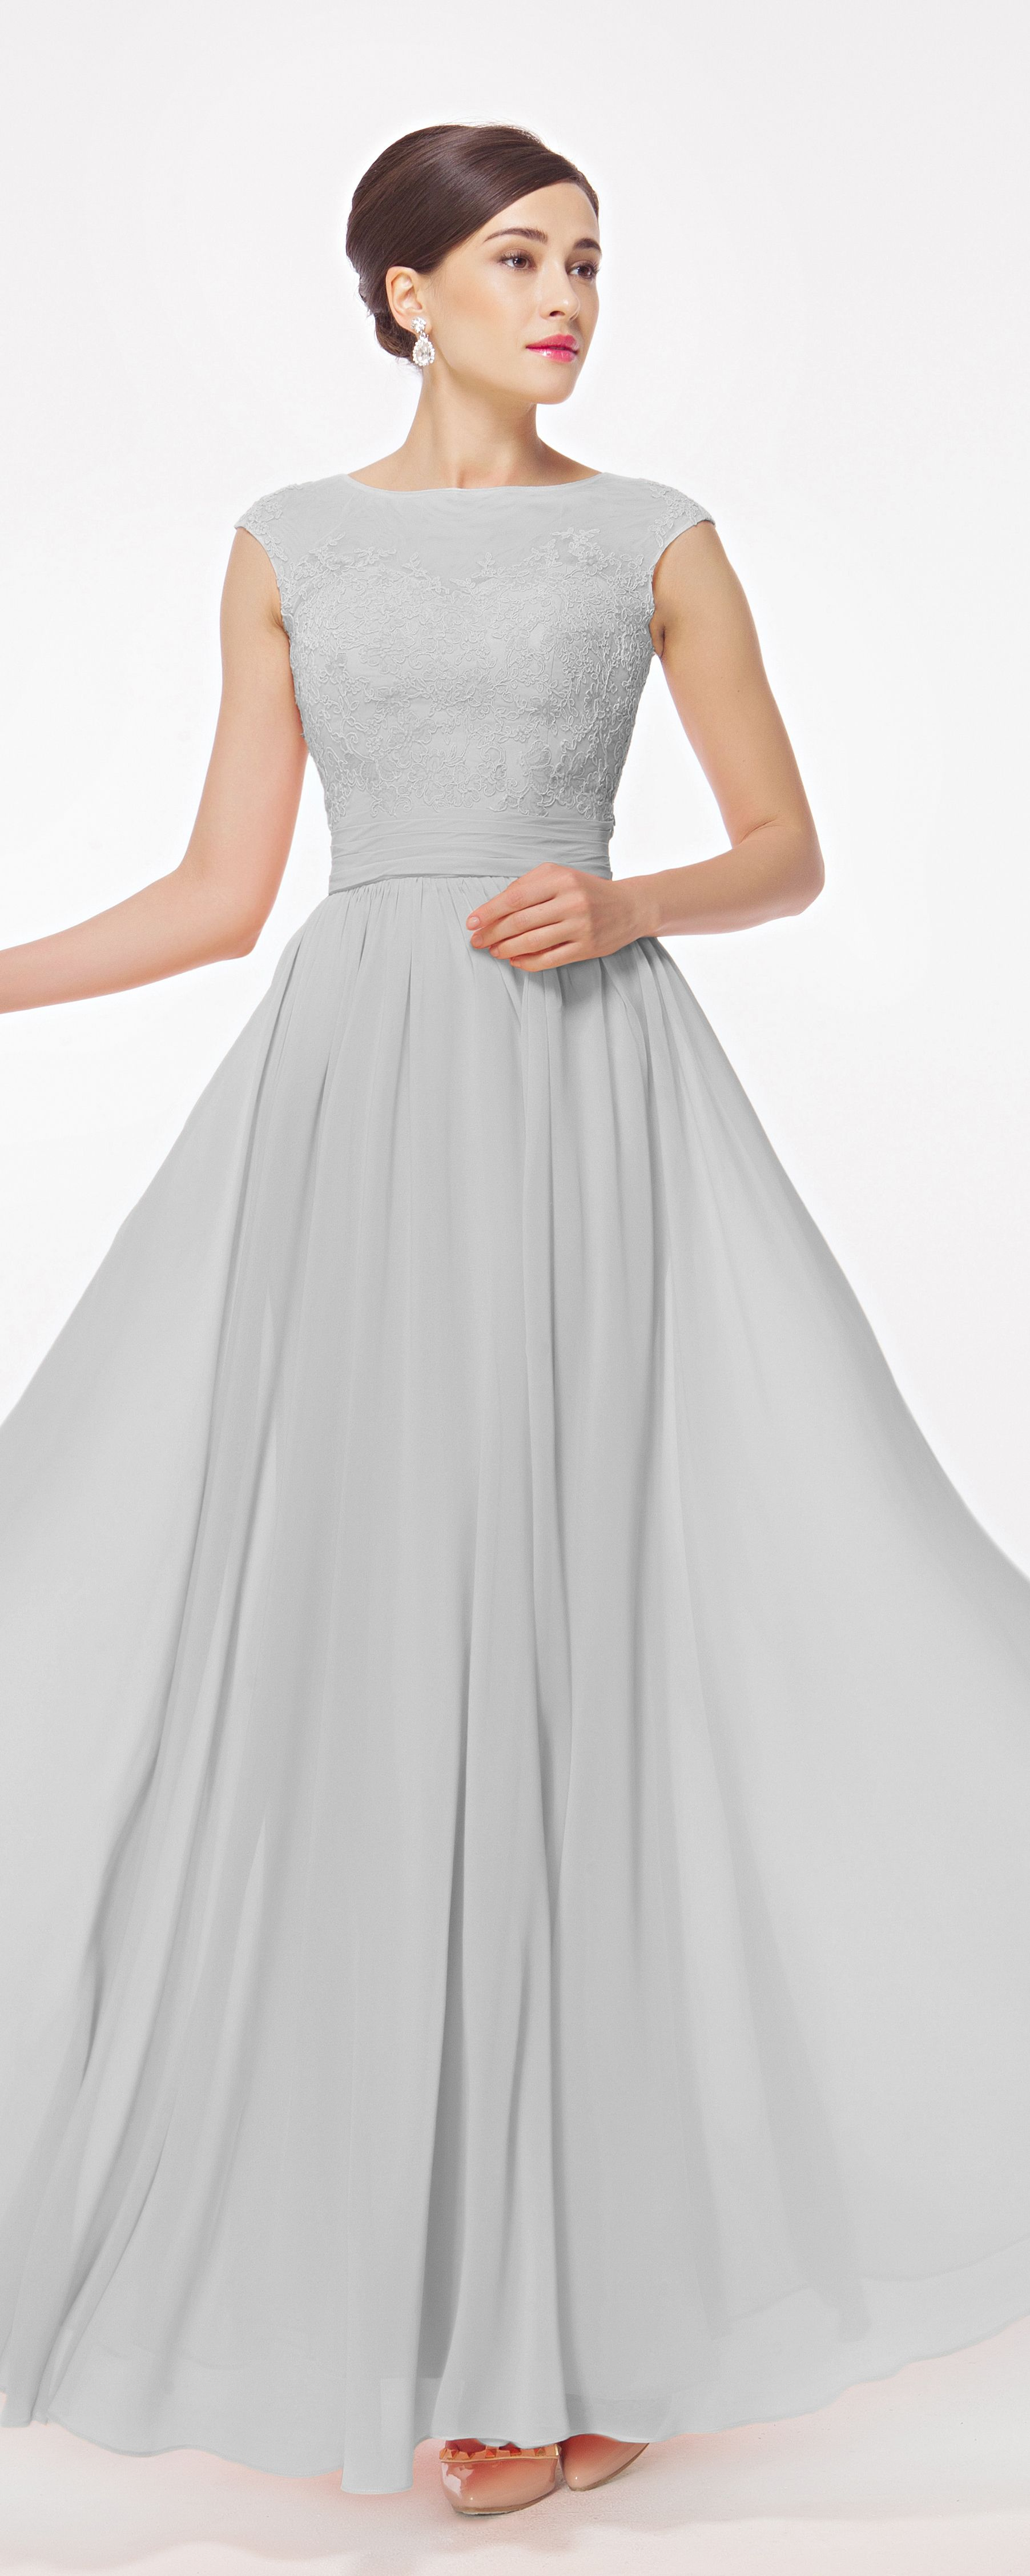 Modest cap sleeves grey mother of the bride dresses long evening